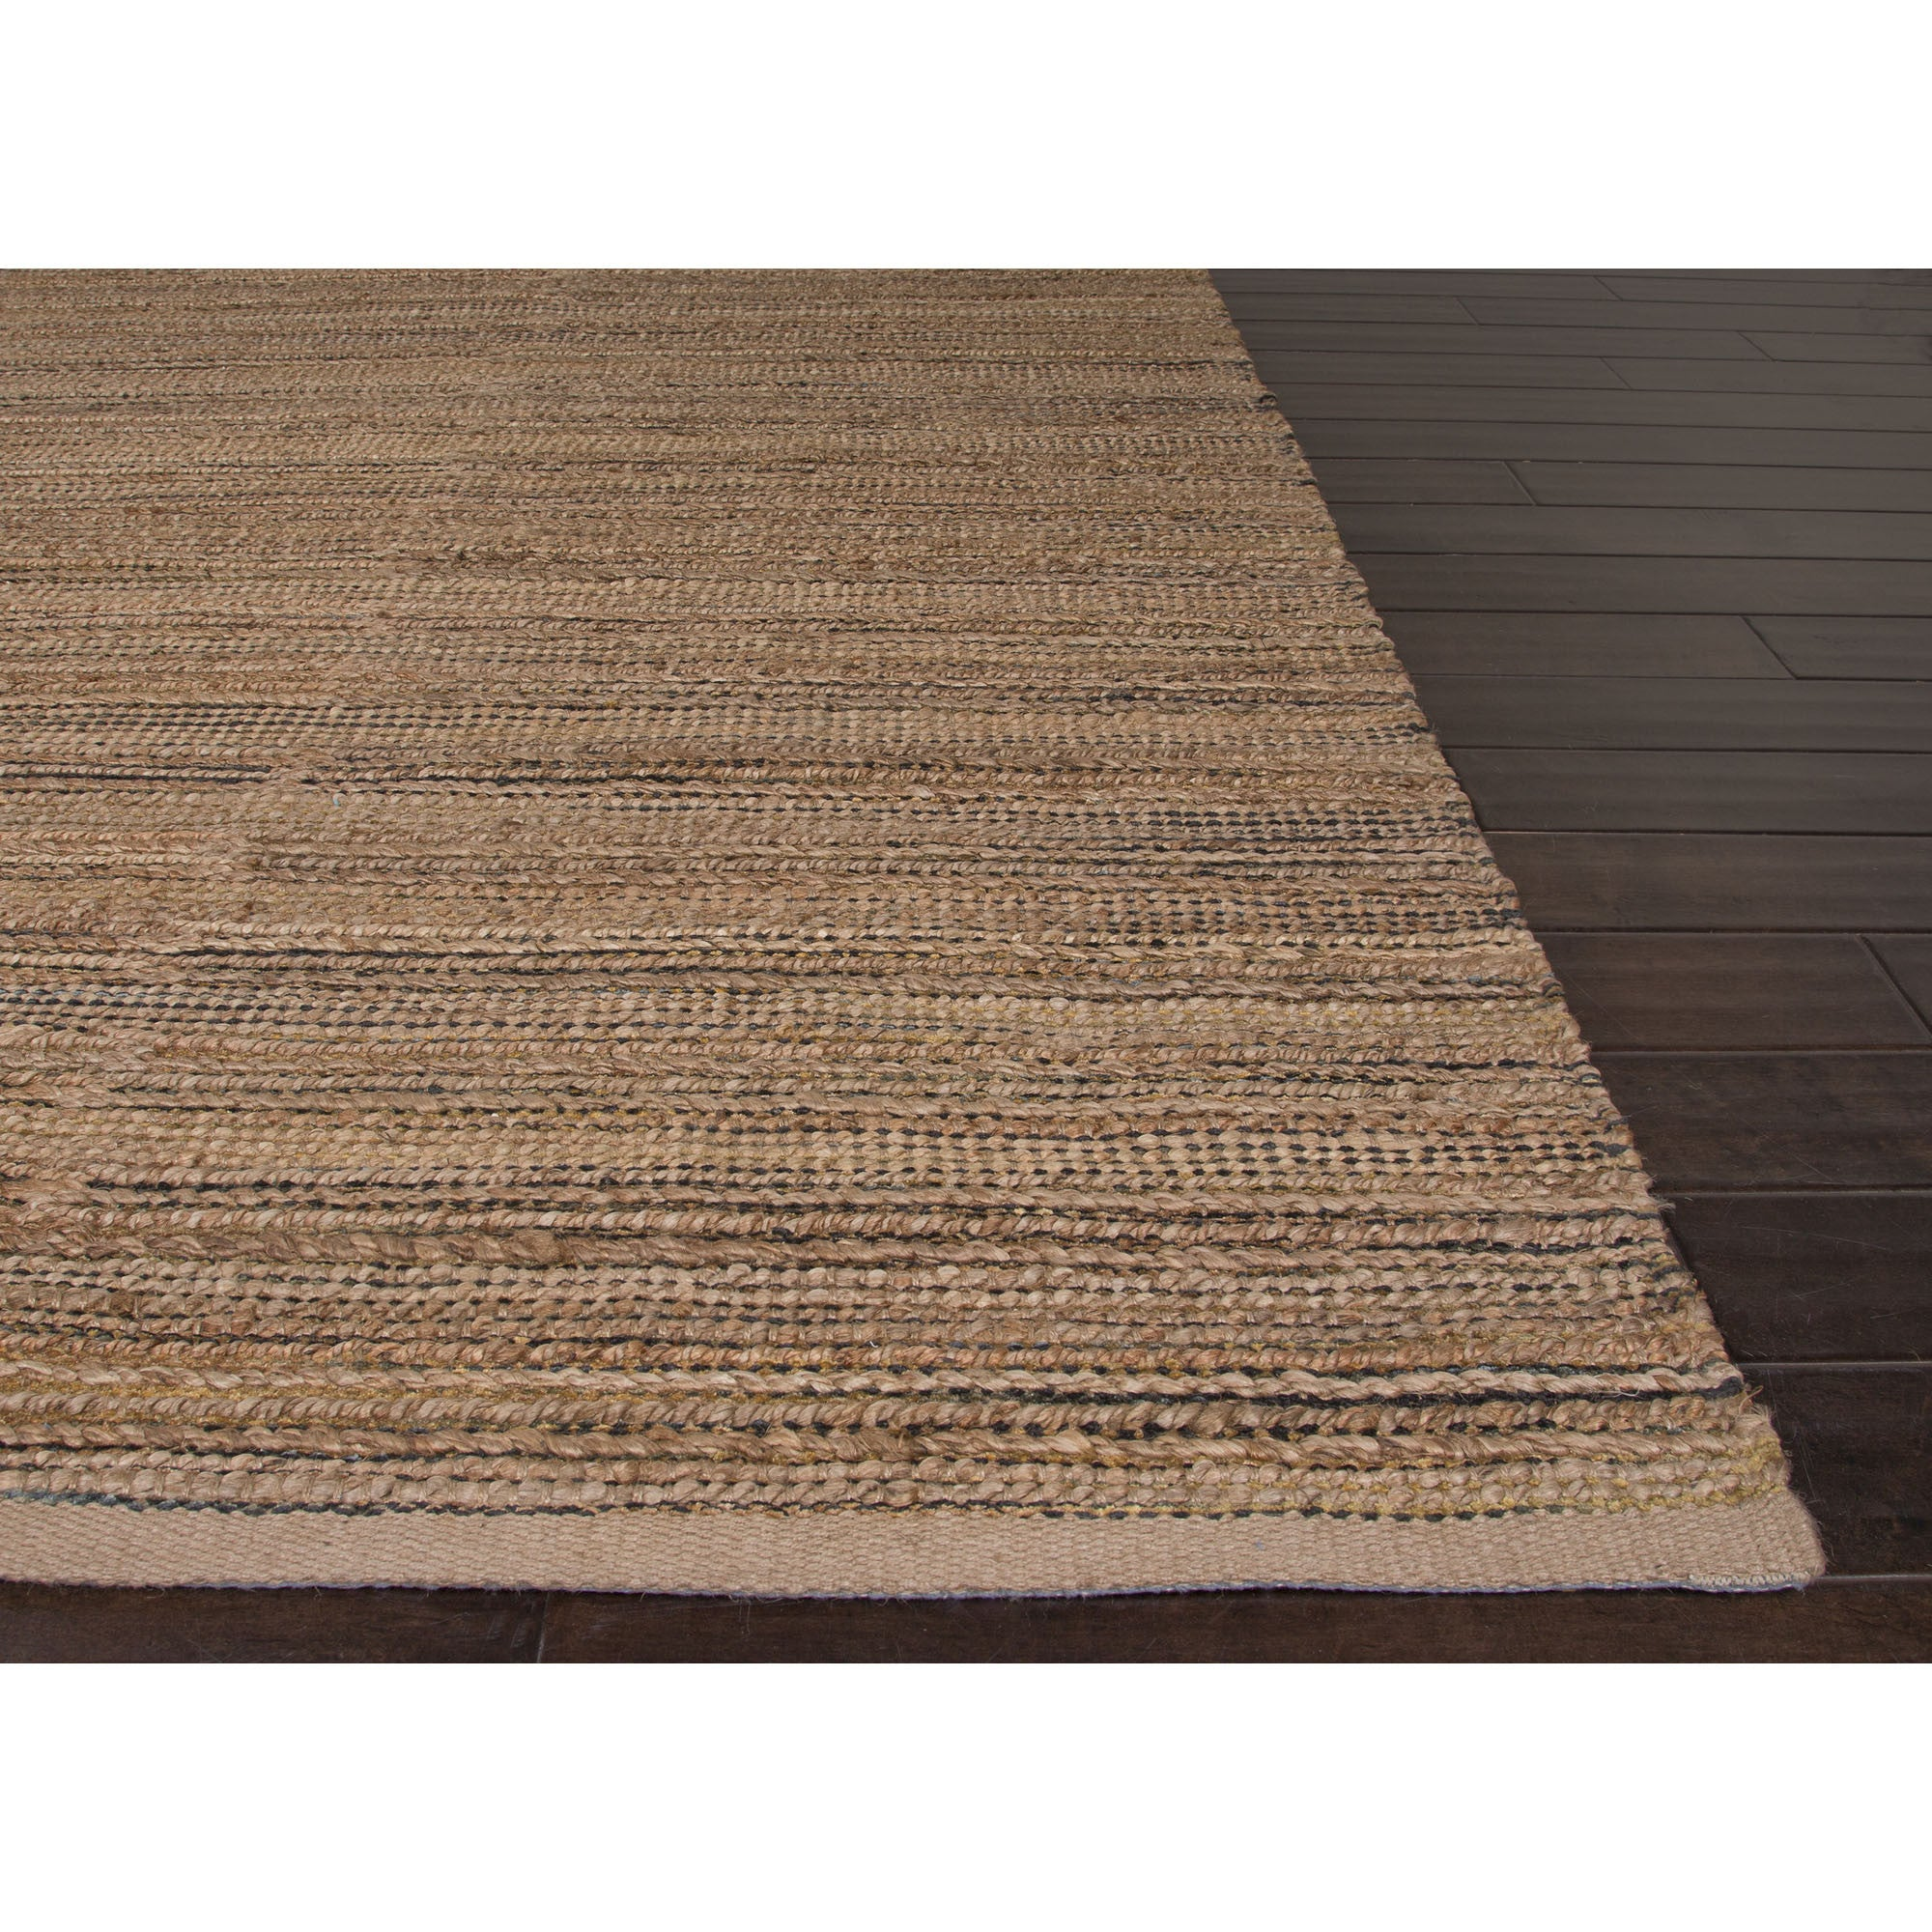 Jaipur Rugs Naturals Solid Pattern Taupe Gray Jute And